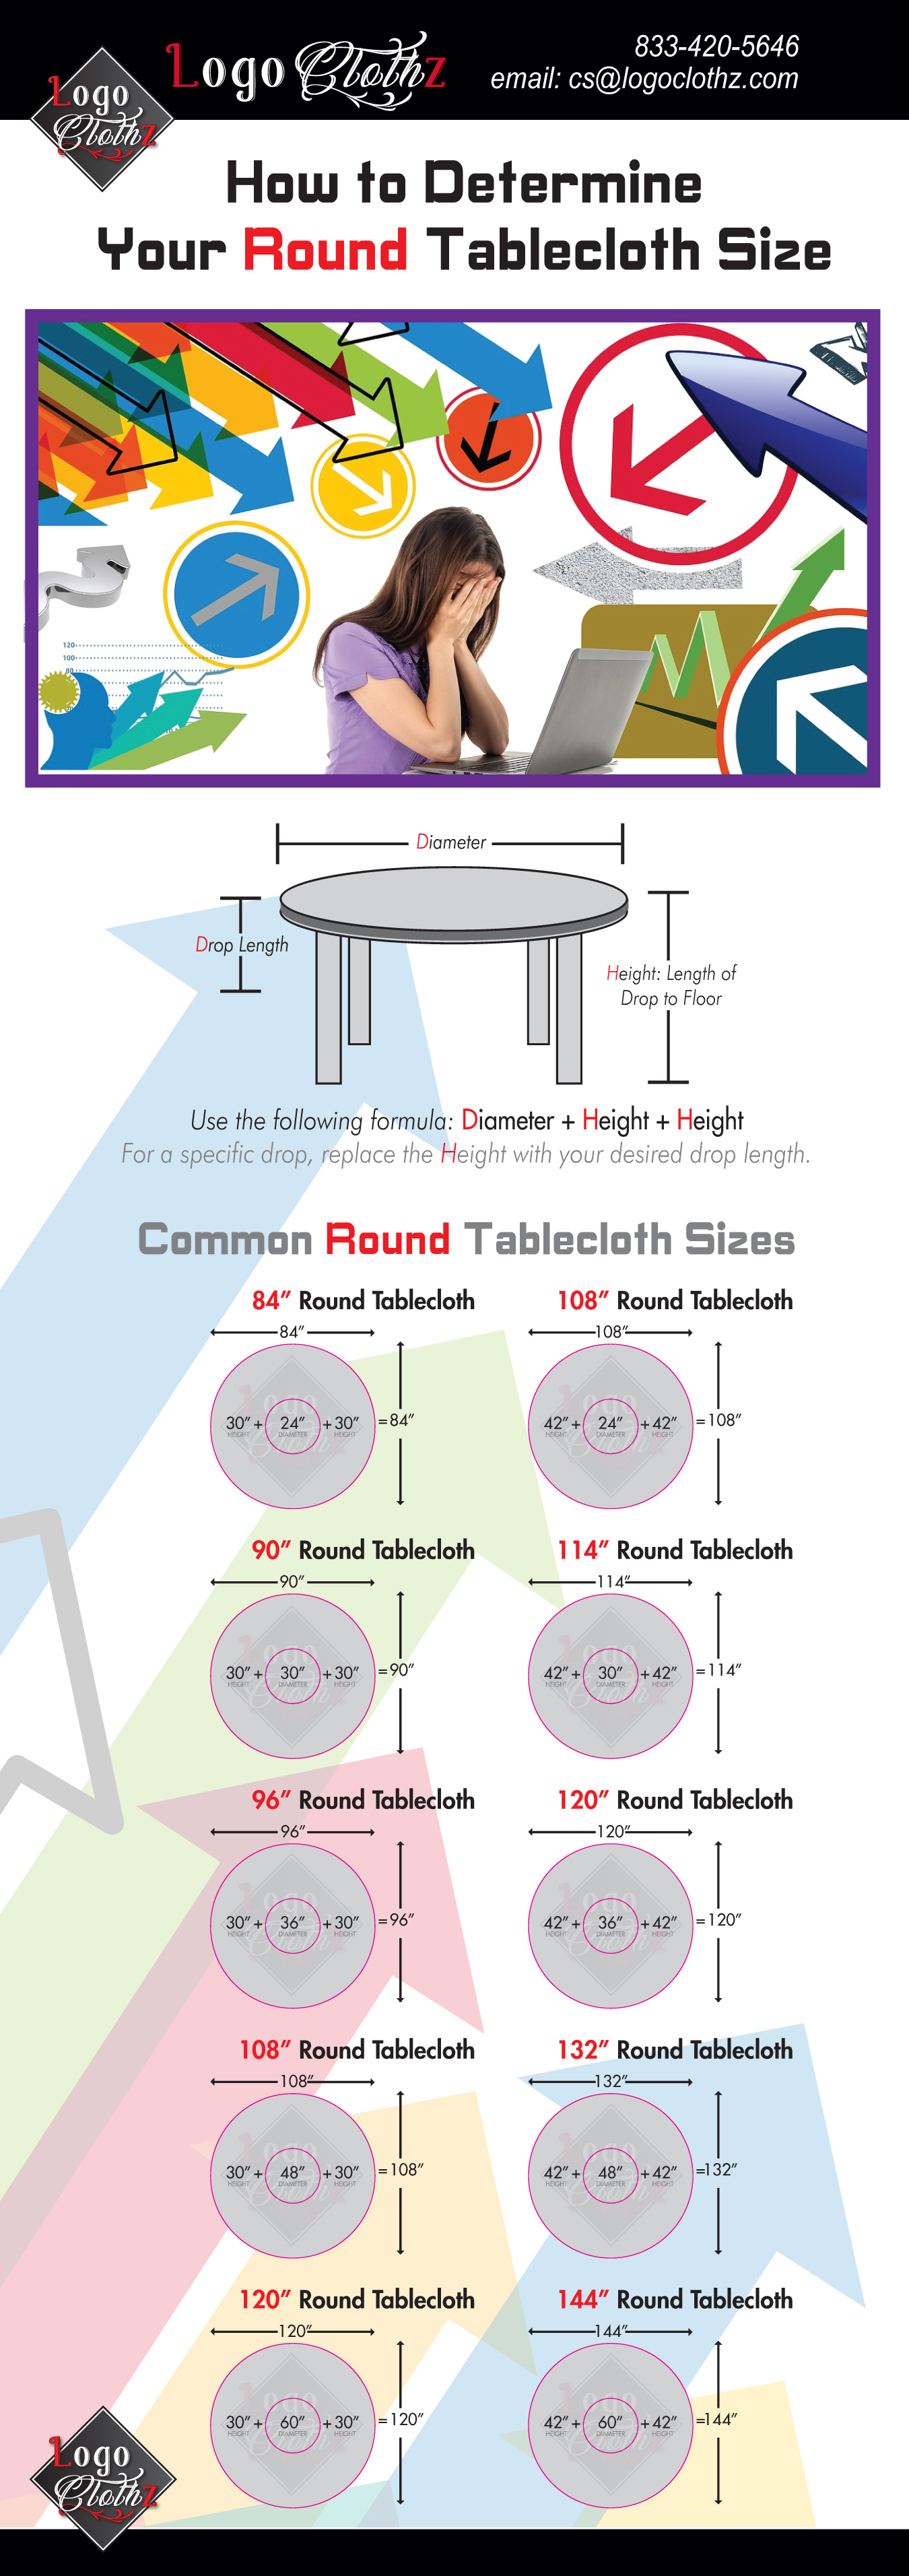 how to size round custom tablecloths